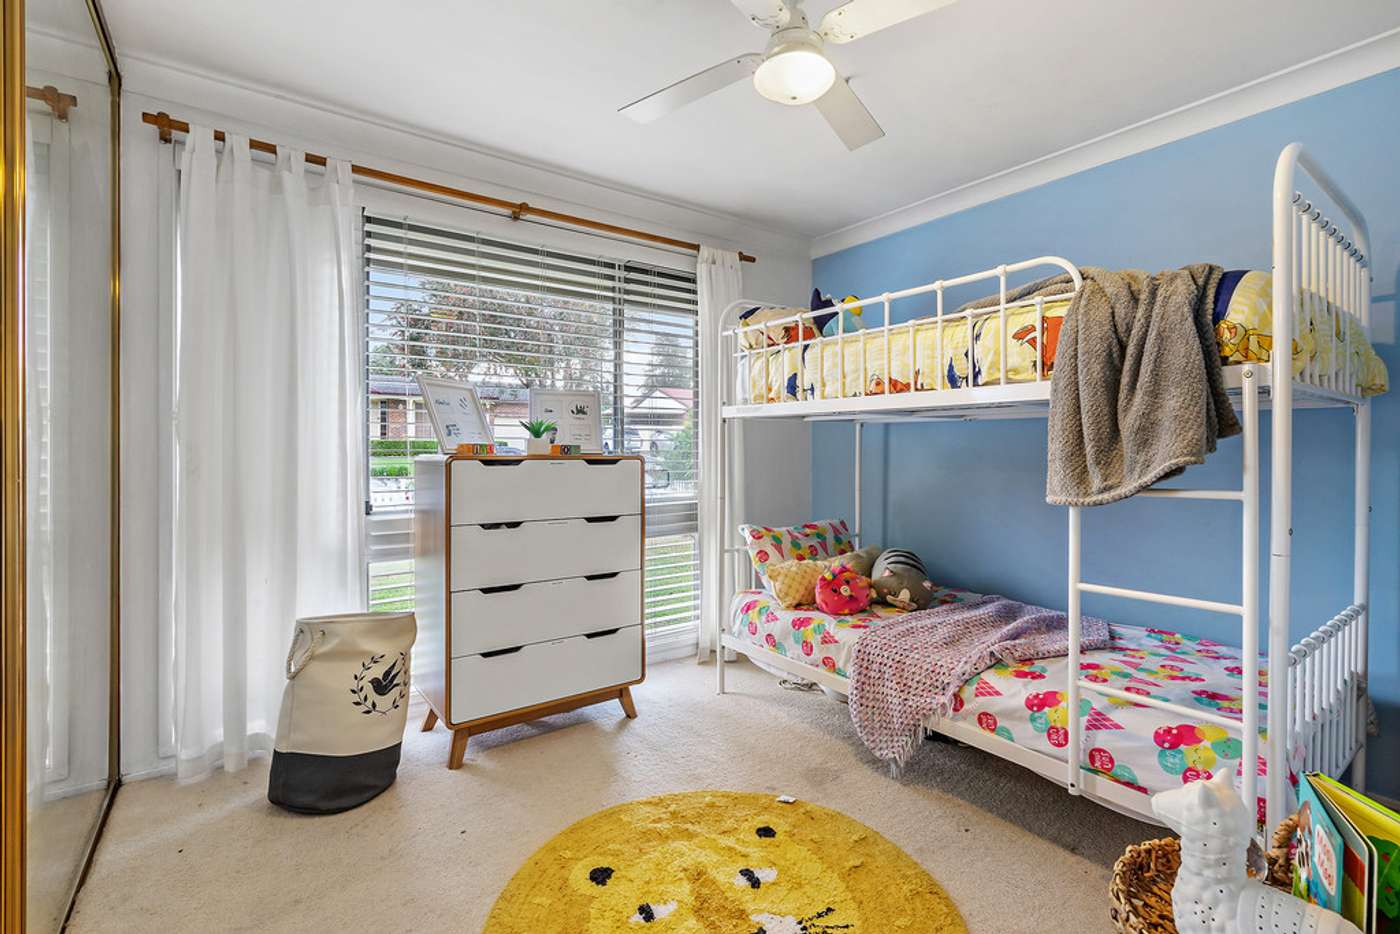 Sixth view of Homely house listing, 35 Oag Crescent, Kingswood NSW 2747